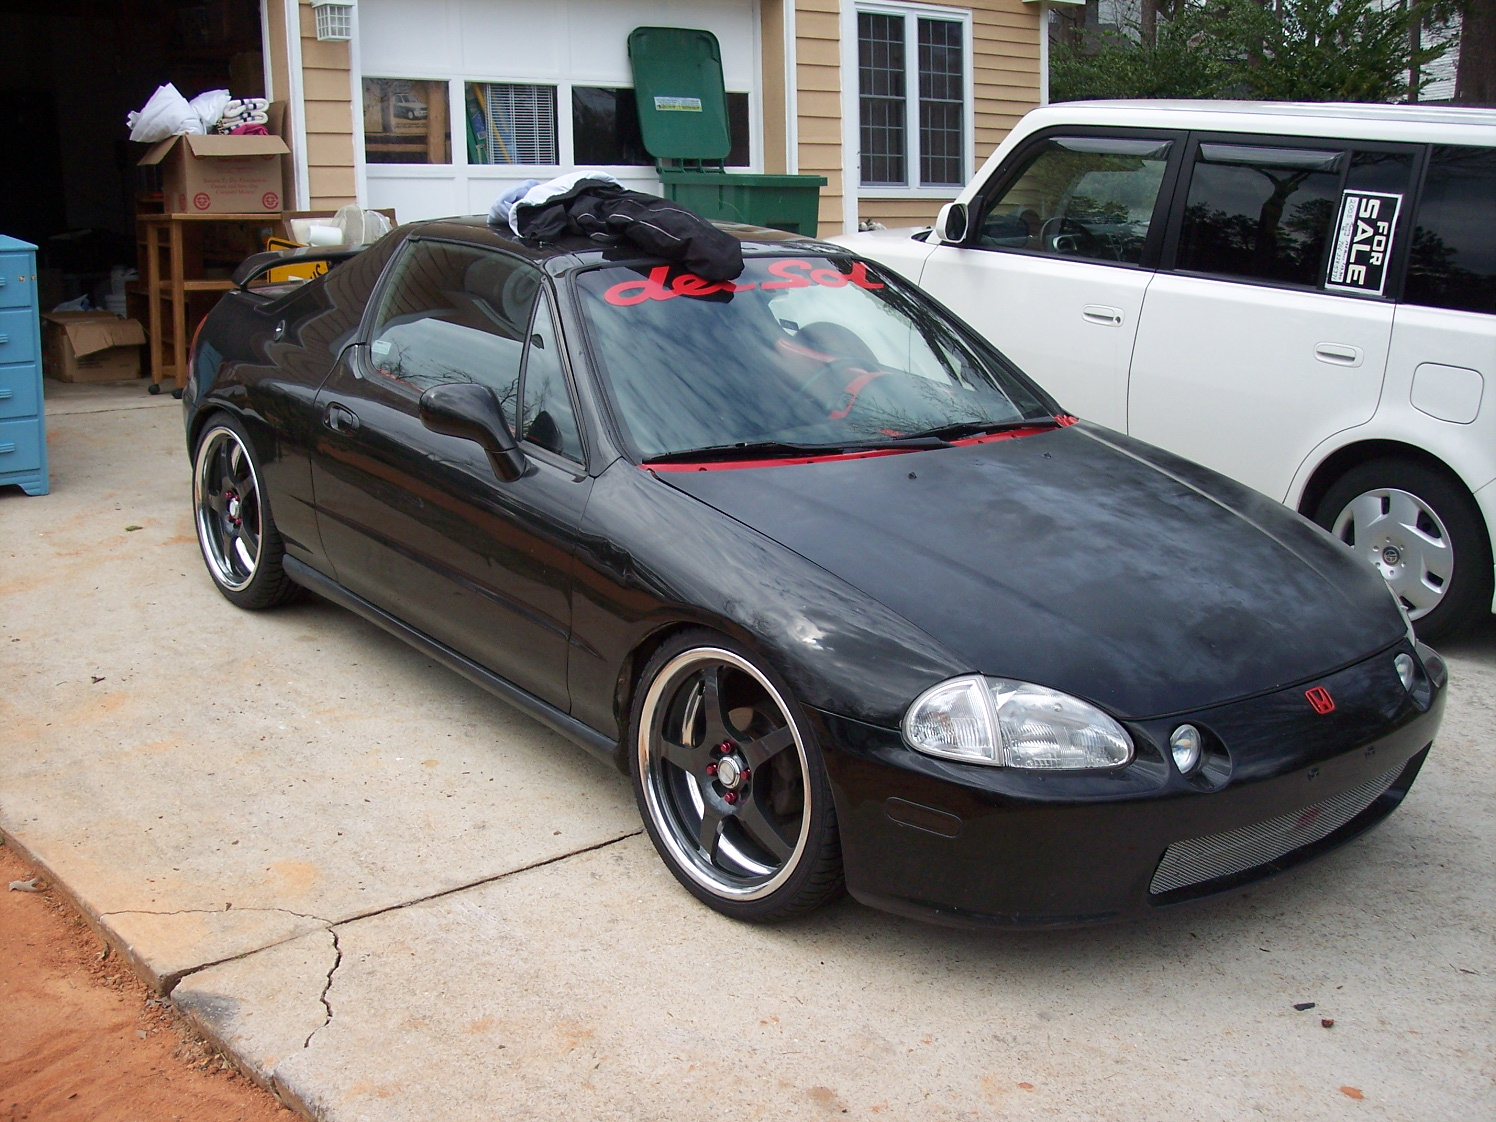 1993 Honda Civic Del Sol Information And Photos Zombiedrive